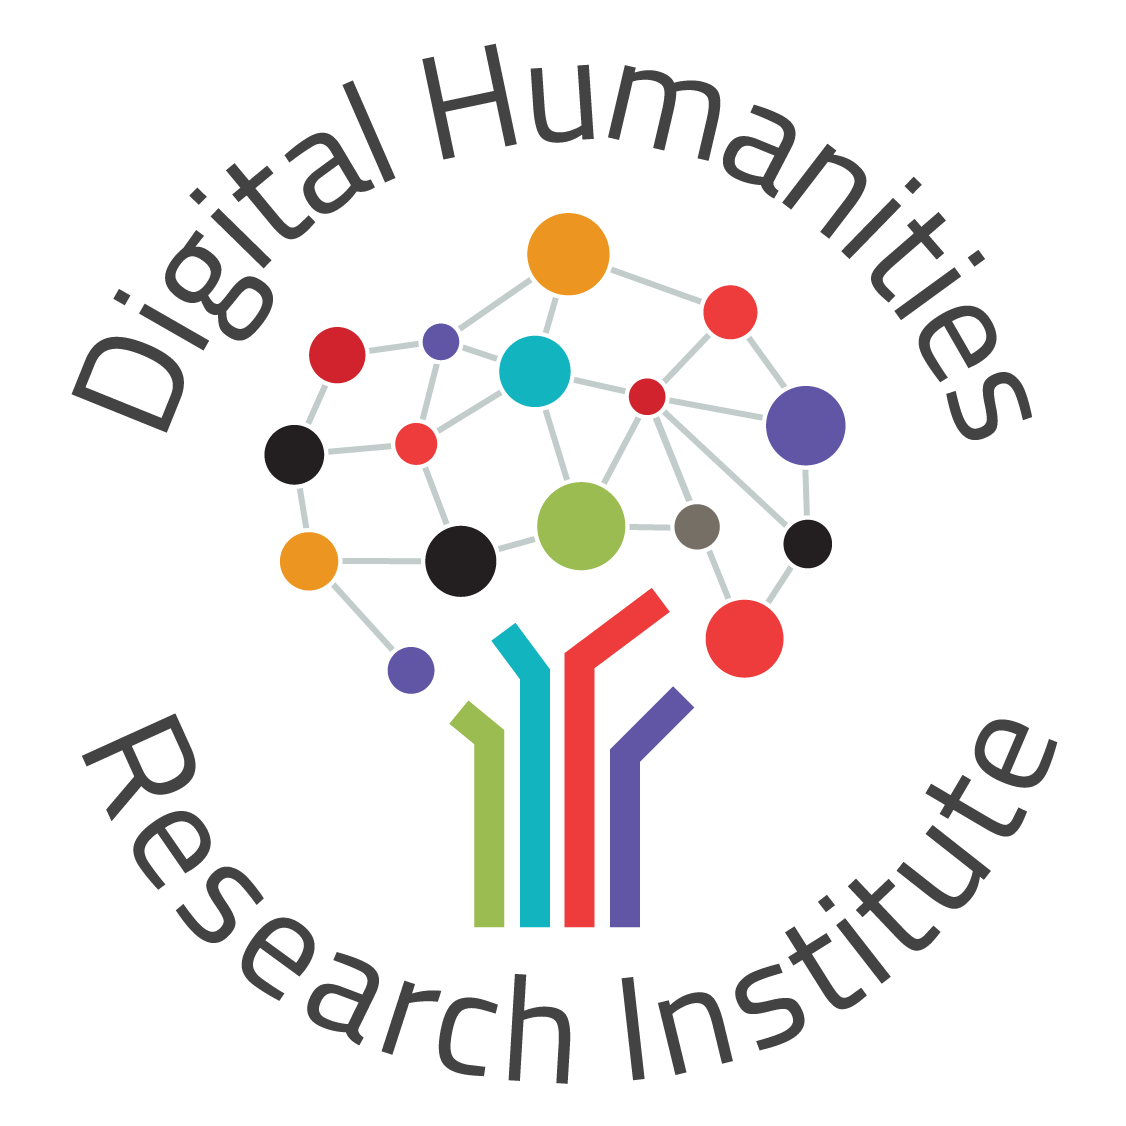 Graphic that depicts: Digital Humanities Research Institute logotype